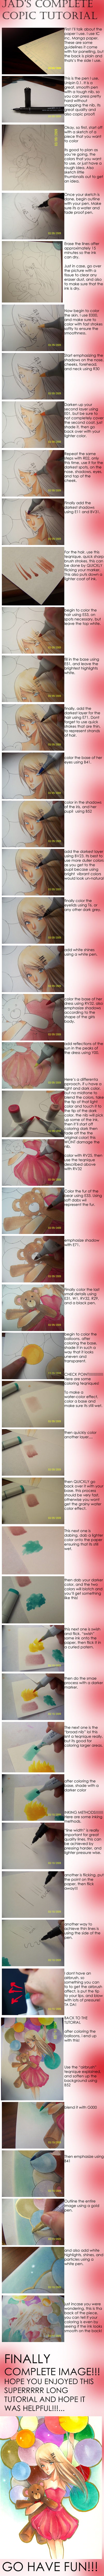 Complete Copic Tutorial by Jad-Ardat